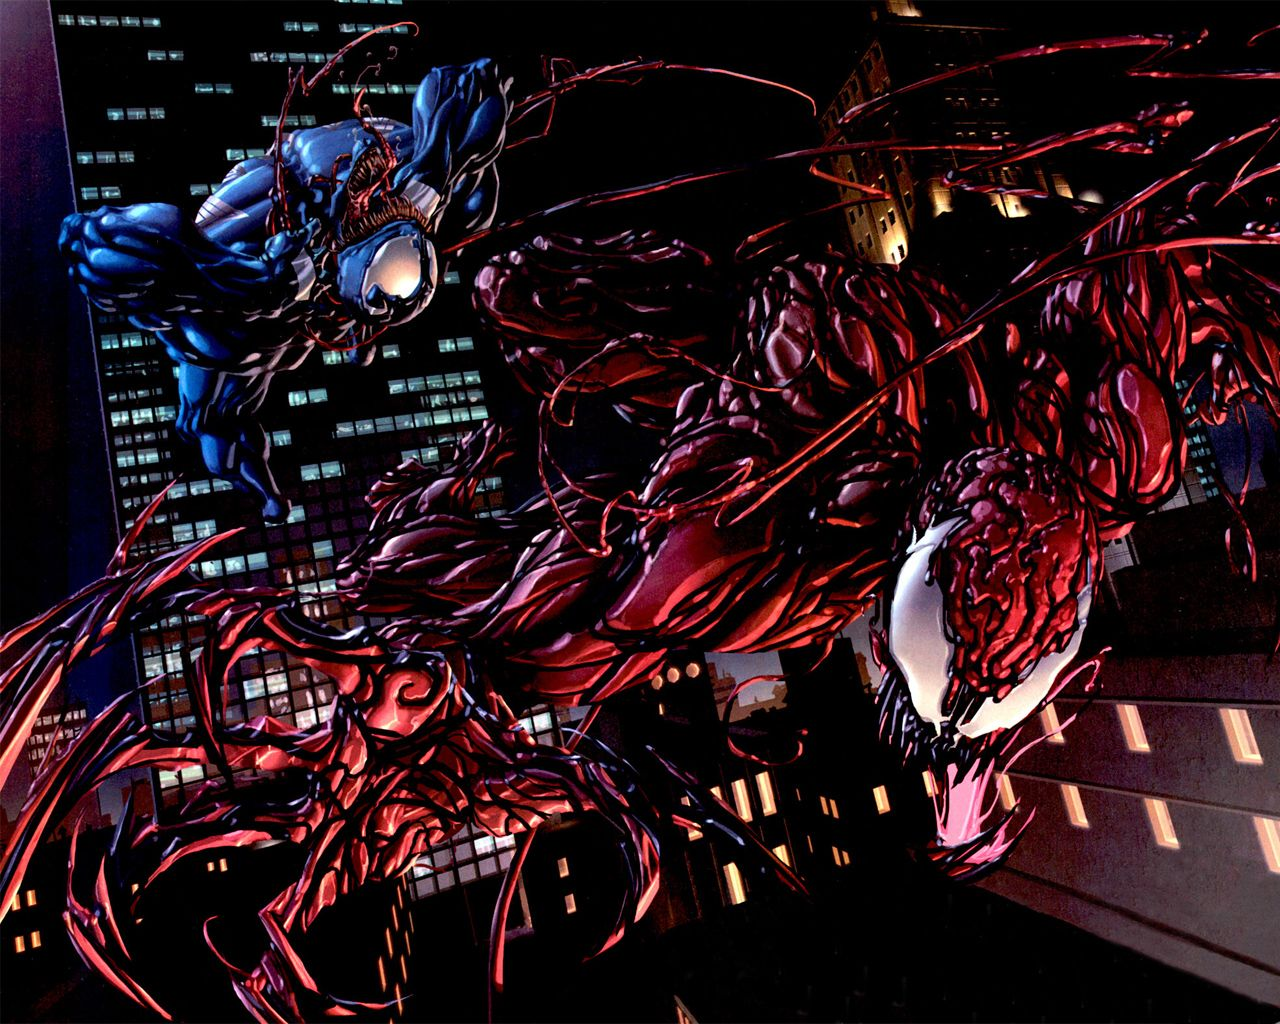 Carnage Venom Wallpaper 68097 Wallbase Cc Carnage Marvel Creative Graphics